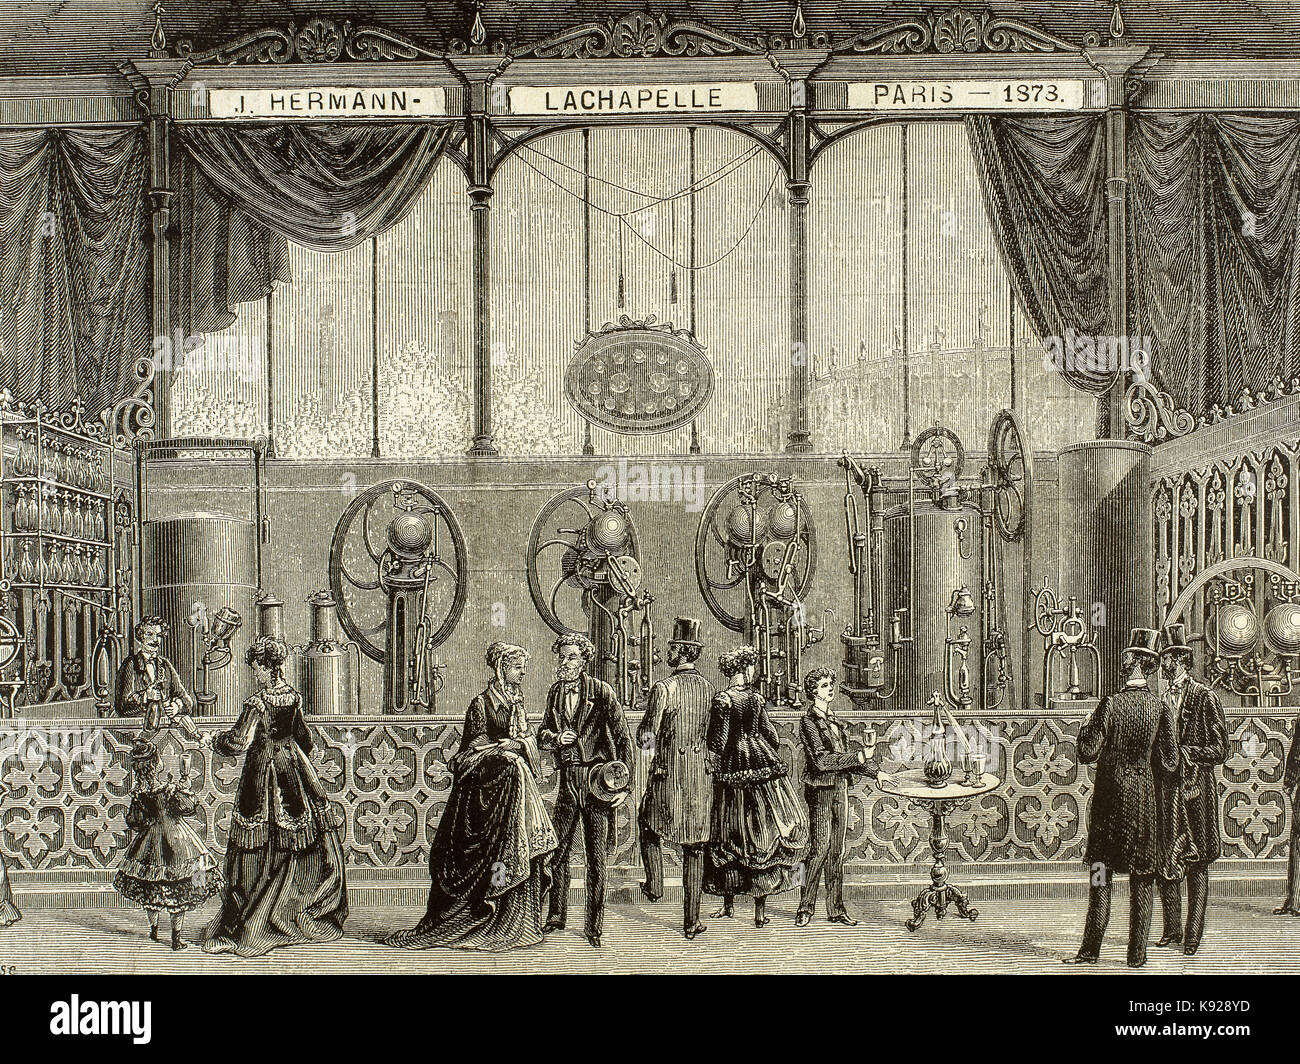 France. Paris. Universal Exhibition of 1878 held at the Trocadero. Installation by J. Hermann Lachapelle. Continuous Stock Photo